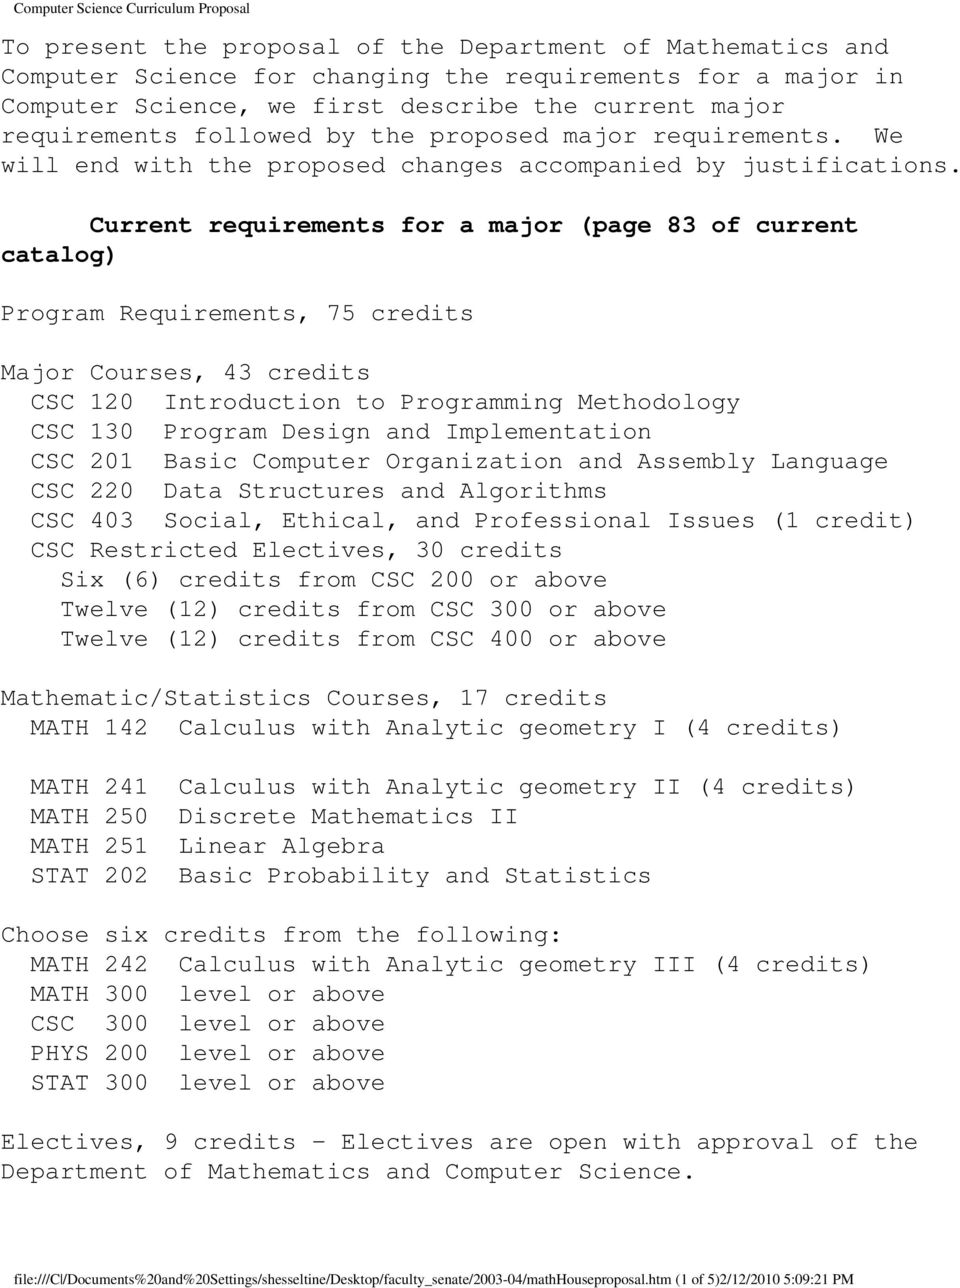 Current requirements for a major (page 83 of current catalog) Program Requirements, 75 credits Major Courses, 43 credits CSC 120 Introduction to Programming Methodology CSC 130 Program Design and